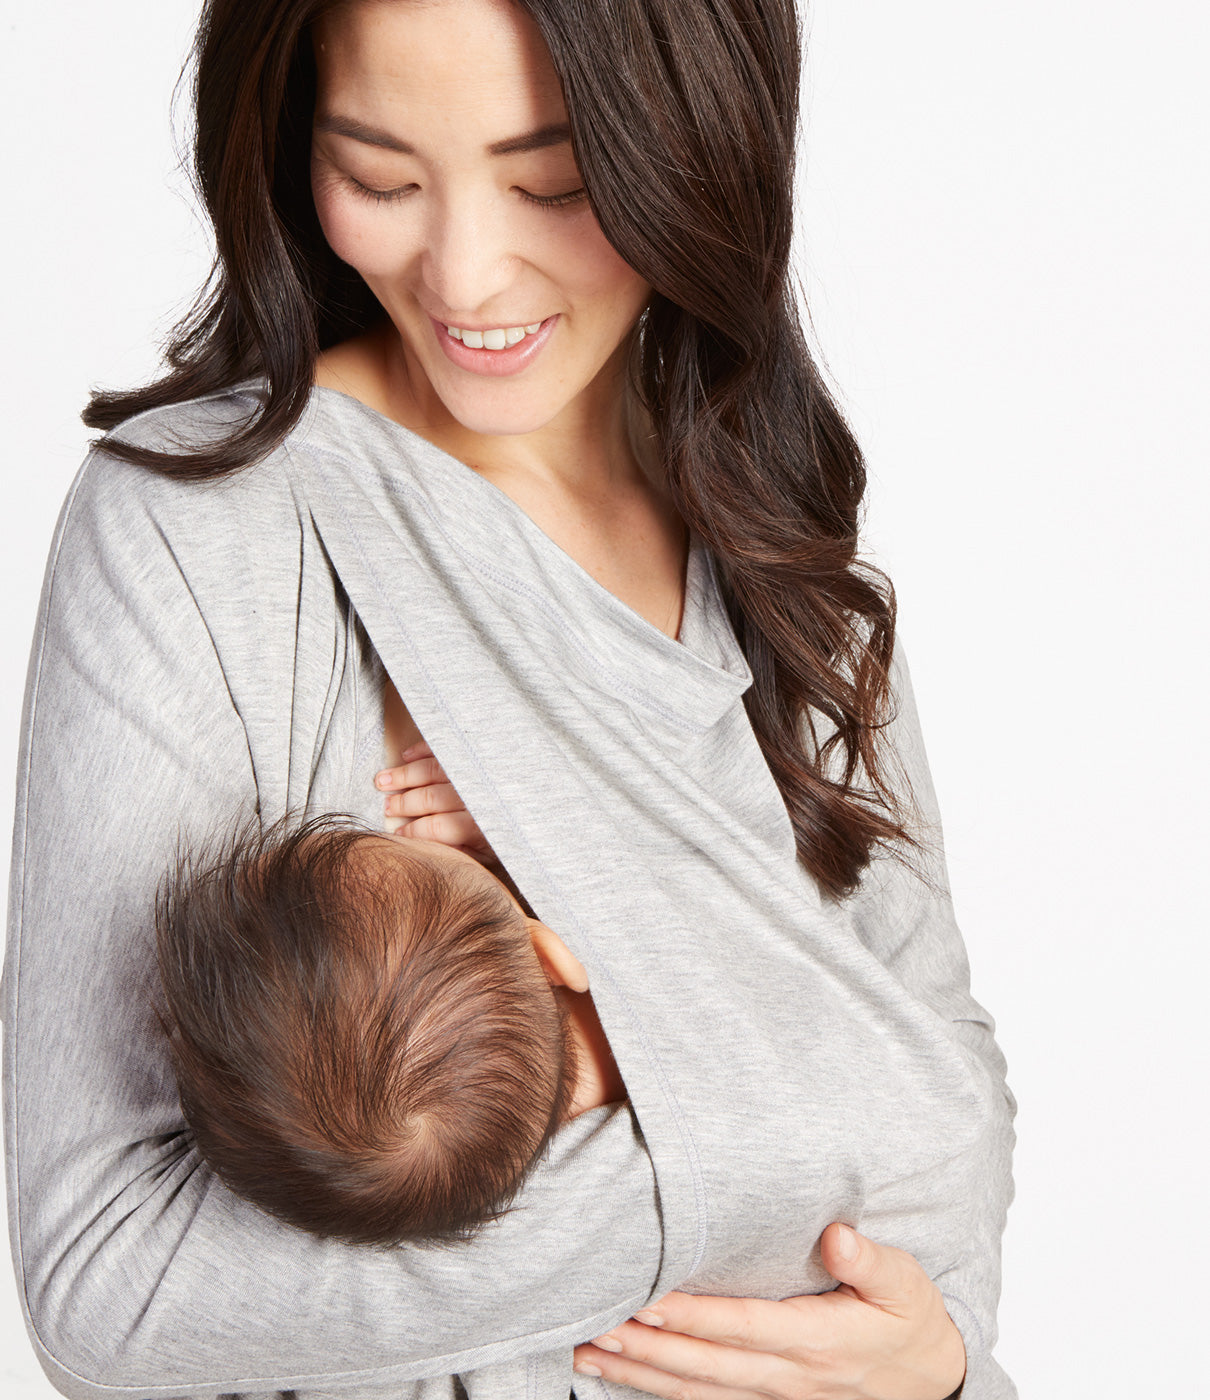 In The DetailsNursing-friendly, nickel-free magnetic closures for easier nursing access that won't harm mama or babe.